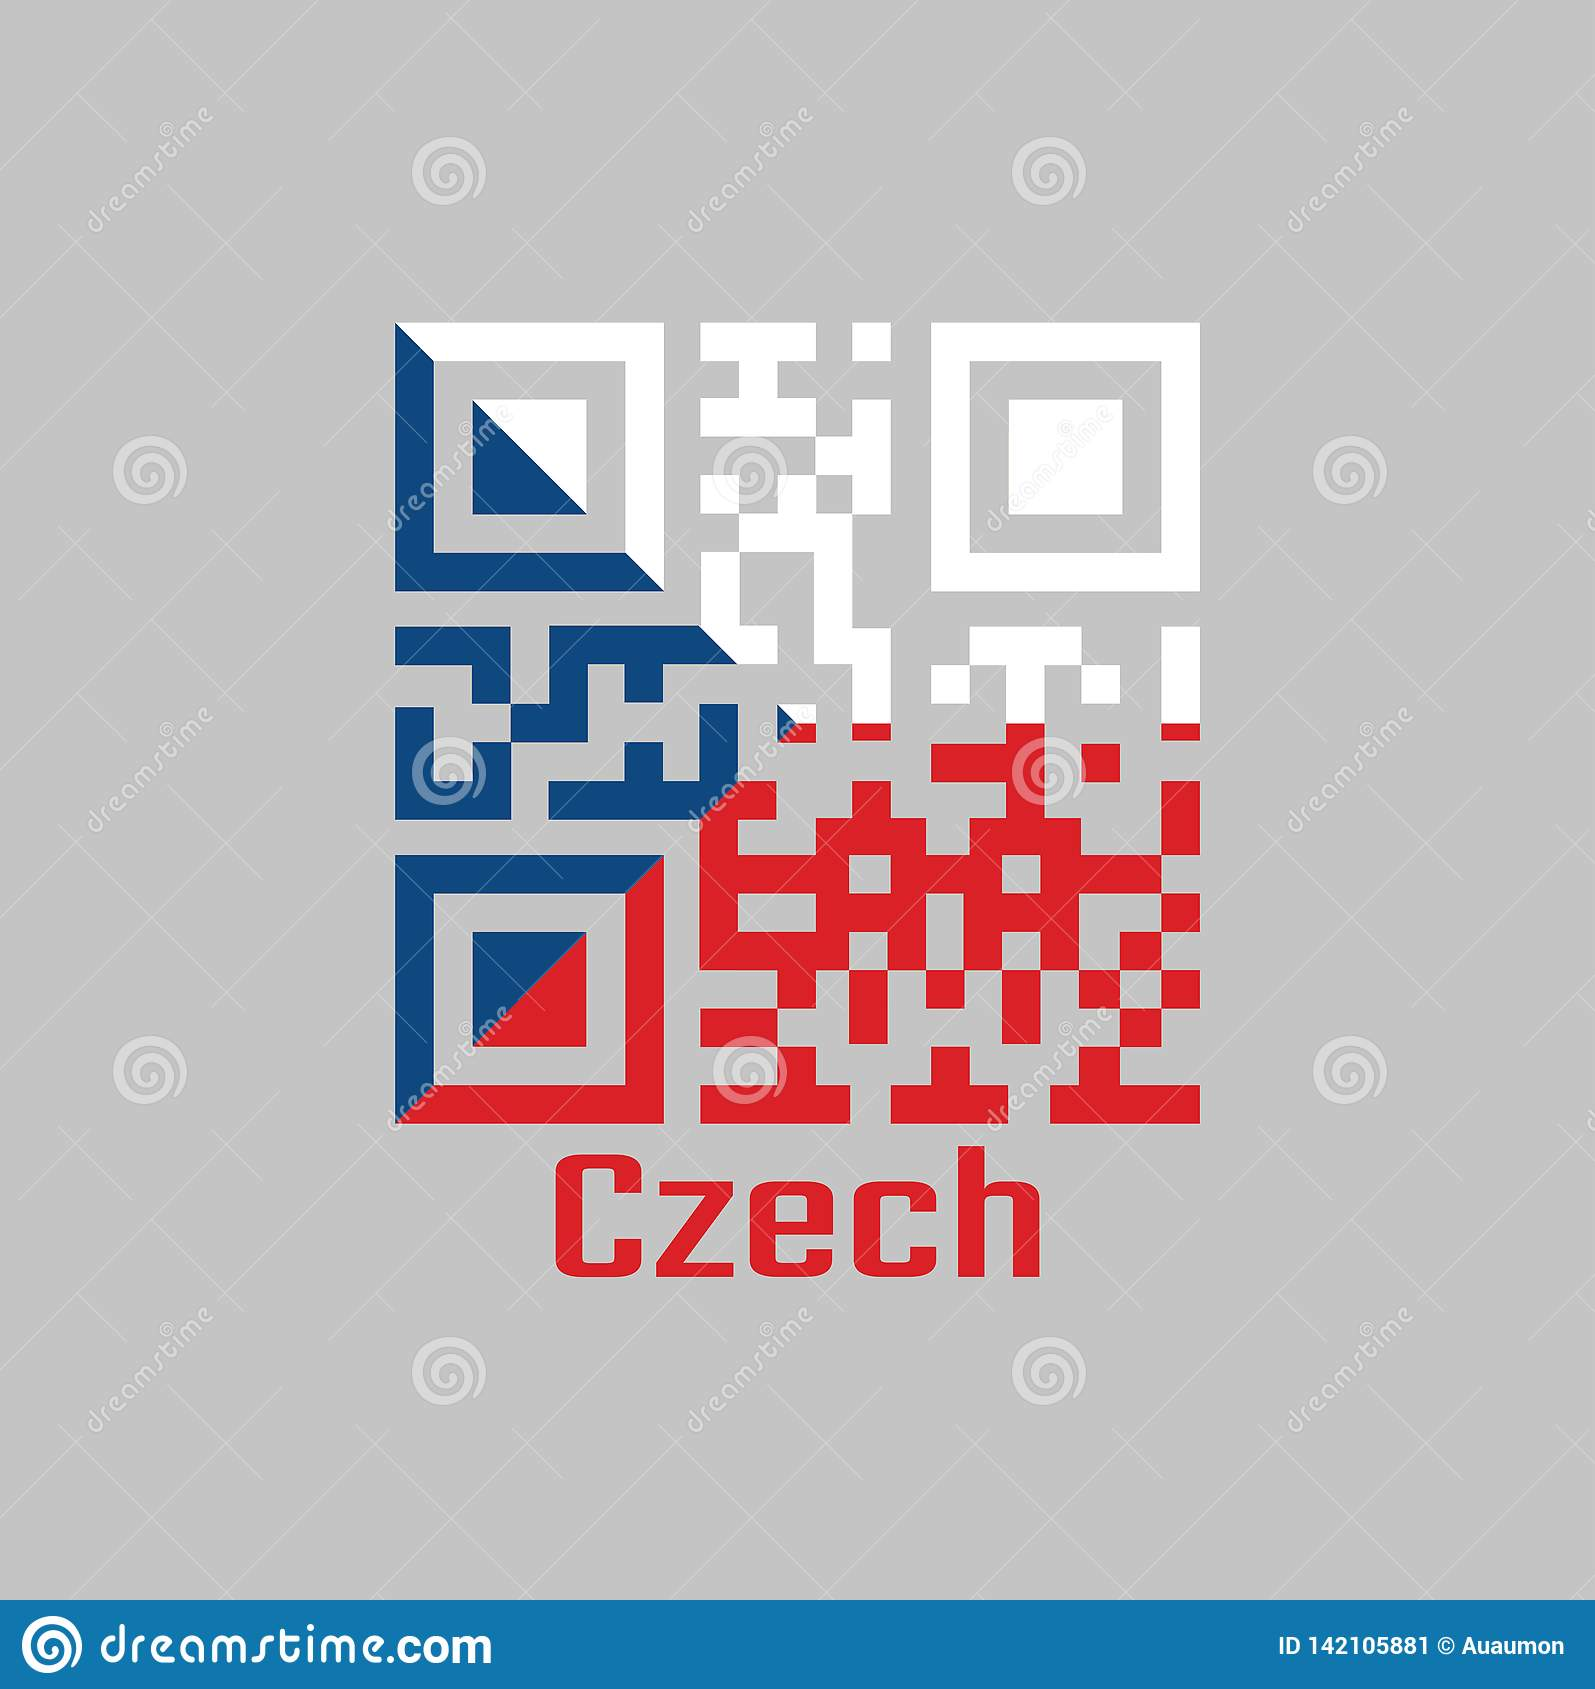 QR code set the color of Czech flag. two equal horizontal bands of white top and red with a blue isosceles triangle based on the